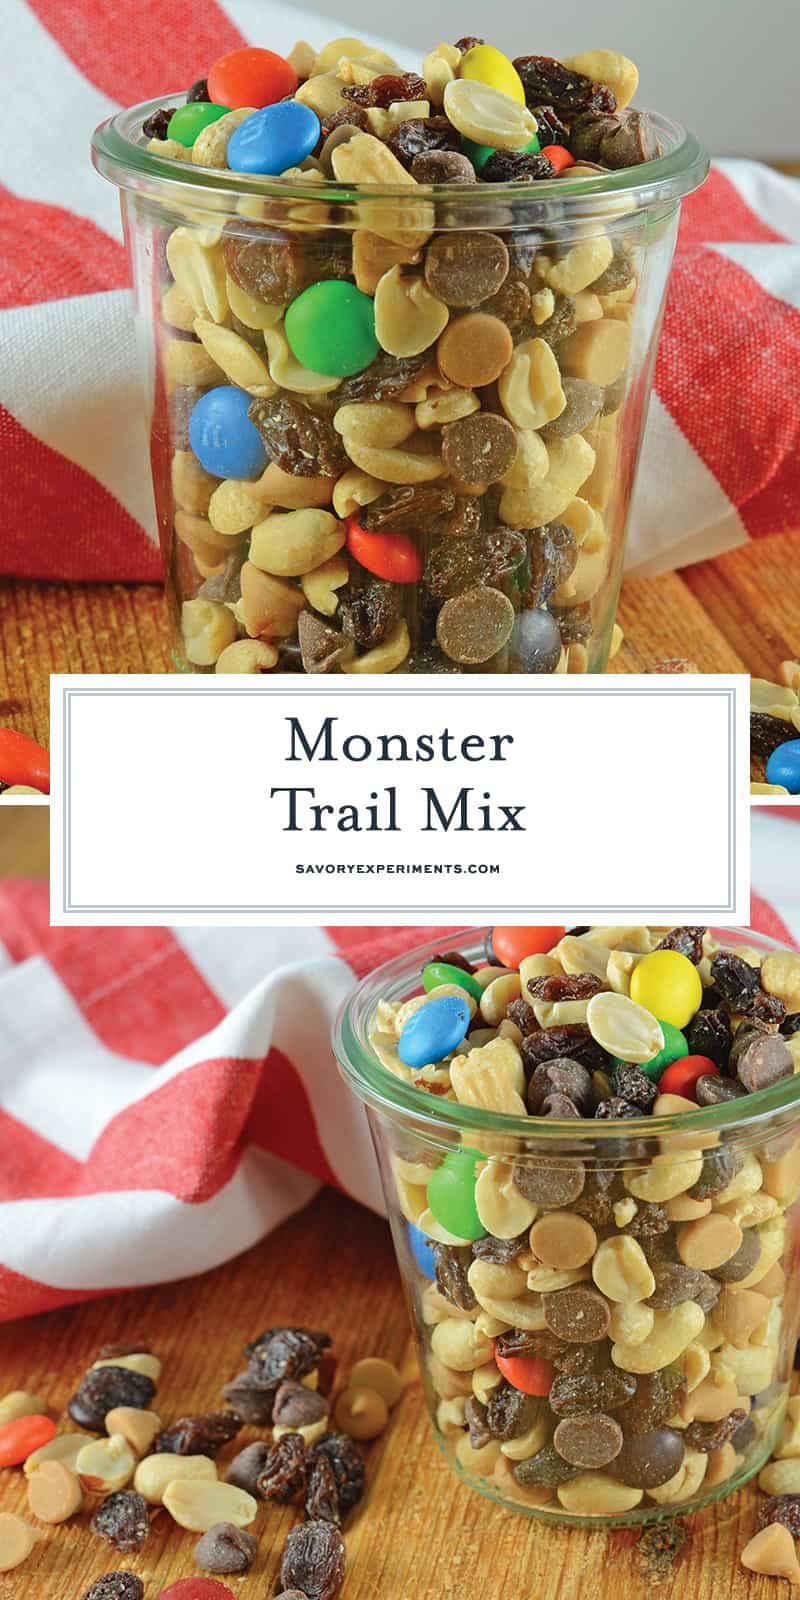 Monster Trail Mix is an easy trail mix of nuts, M&Ms, raisins and chips. The perfect snack for camping, hiking or an afternoon by the pool. Make a large batch and snack for days! #monstermix #trailmix www.savoryexperiments.com